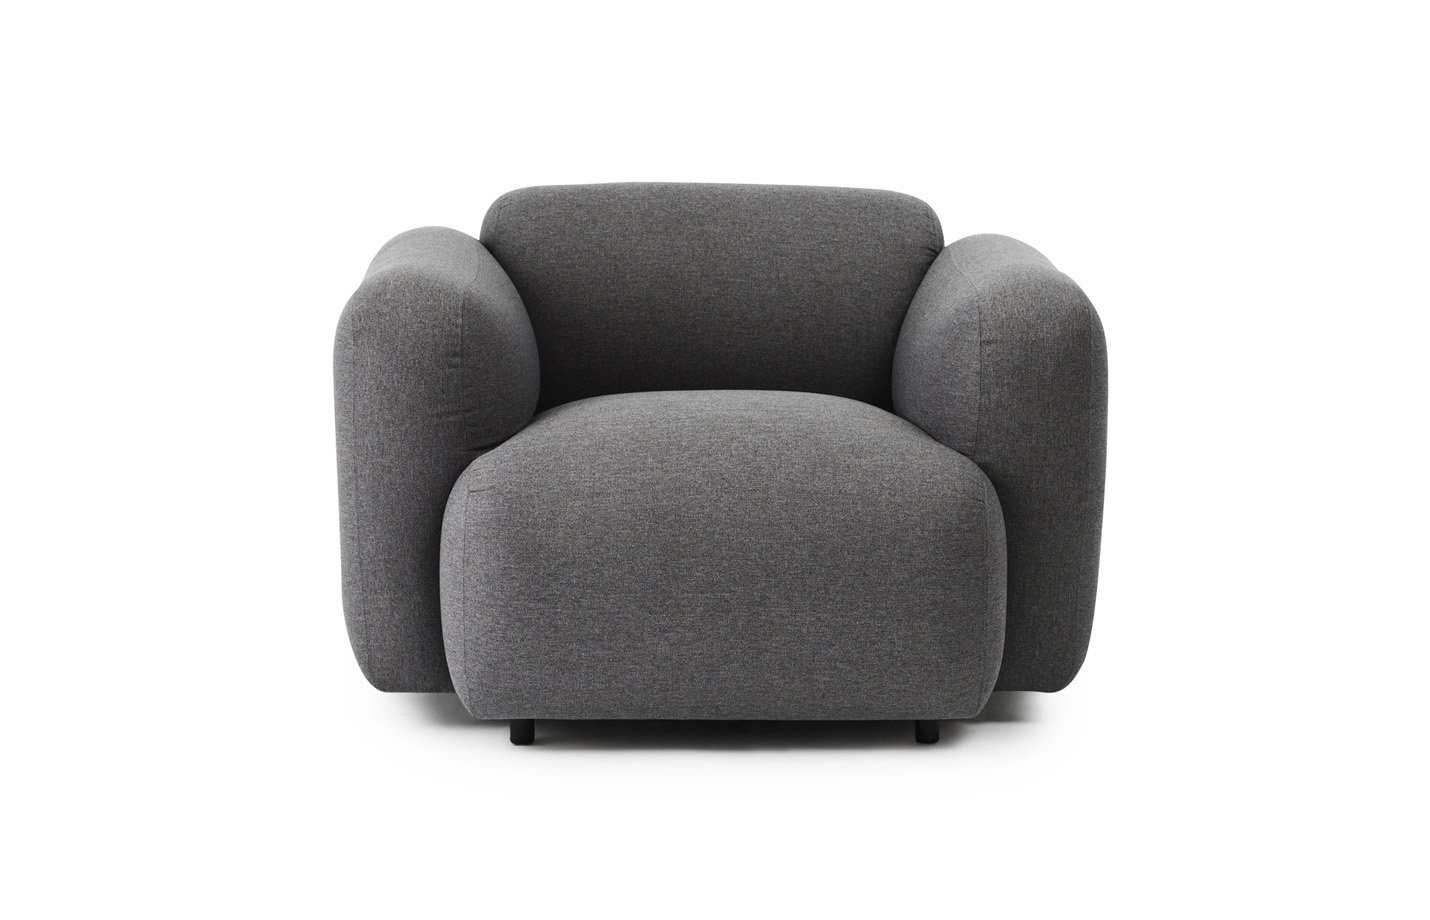 Swell armchair – medley – grey